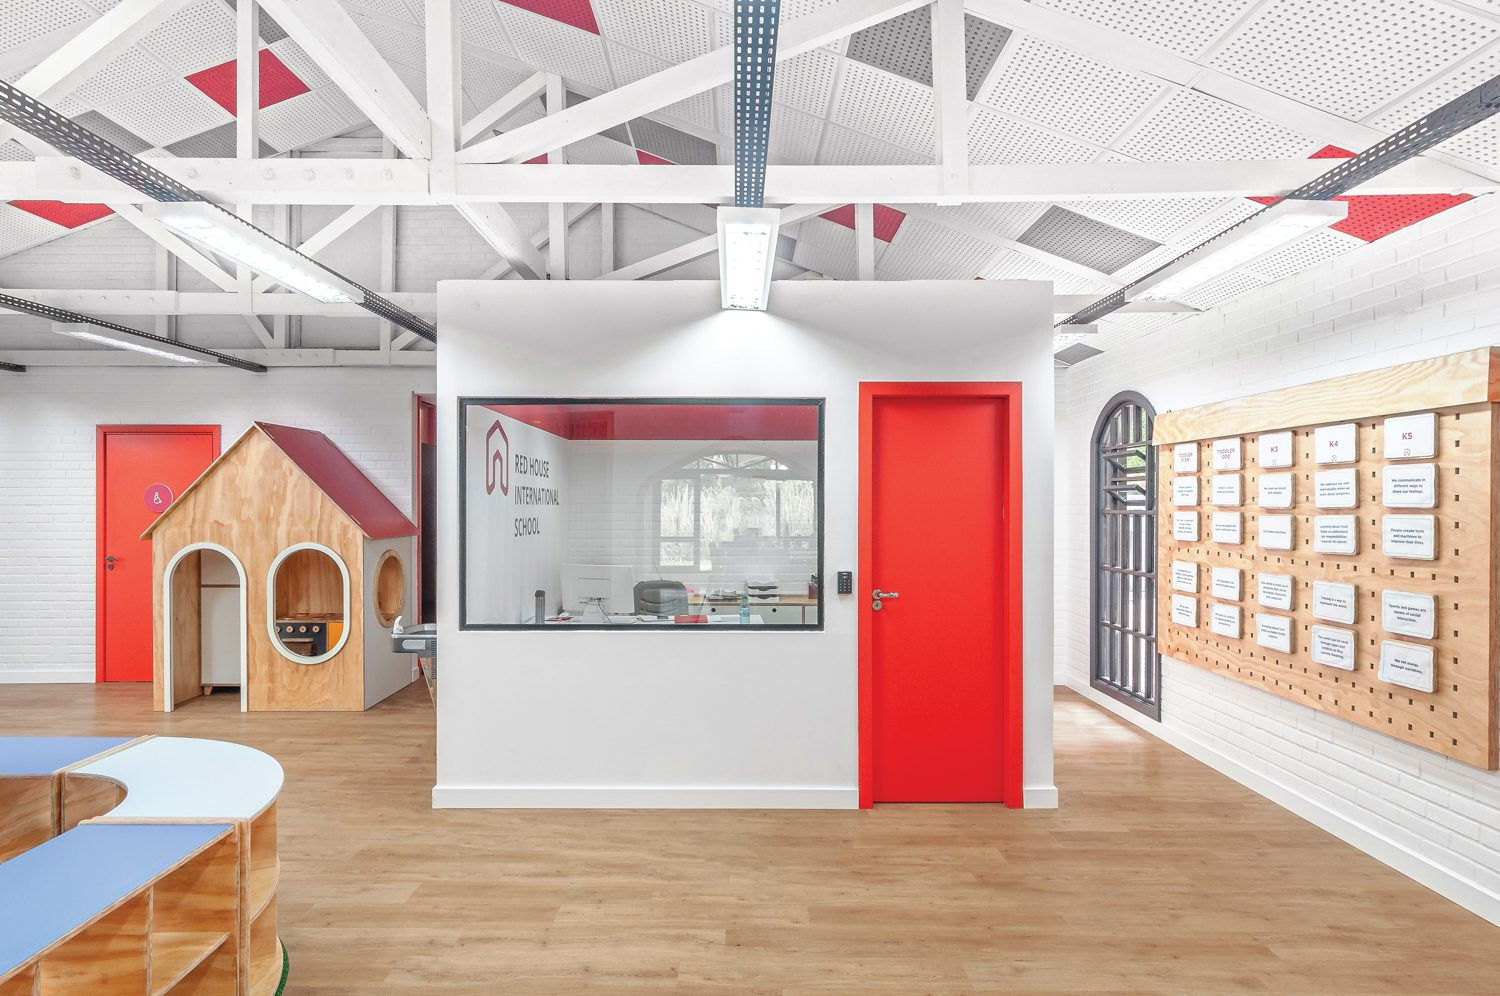 A pop of color enlivens this indoor house within the school.